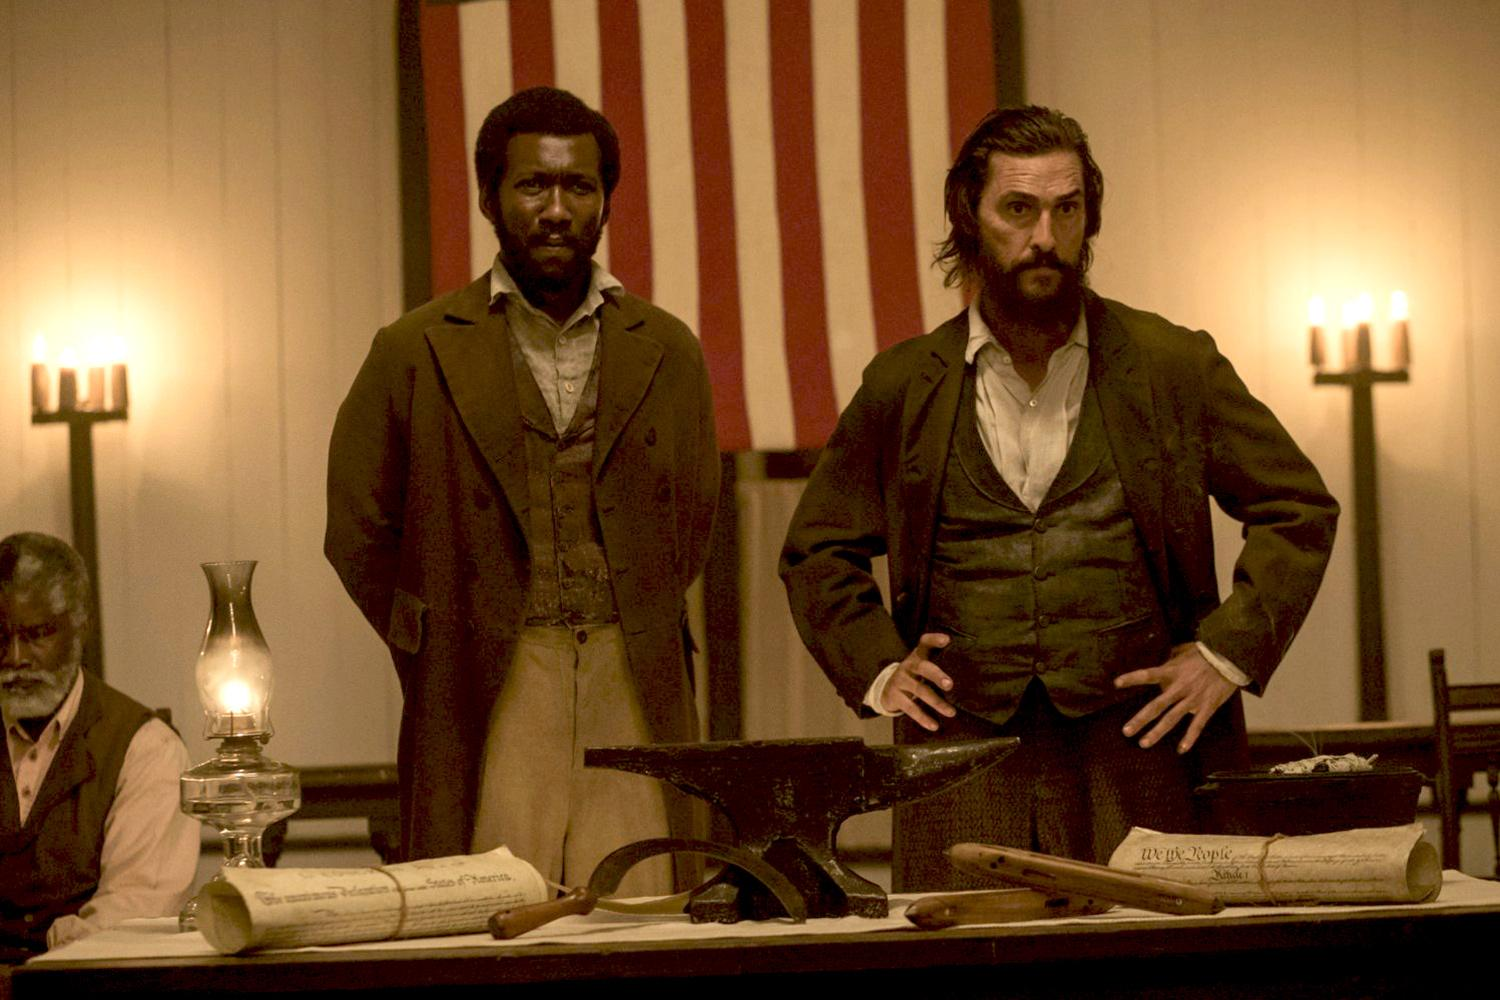 Matthew McConaughey, right, plays a white Mississippi farmer opposed to slavery who leads an uprising against the Confederacy, and Mahershala Ali plays Moses, a runaway slave who helps and joins him. (Photo by Murray Close/©2015 STX Productions LLC)